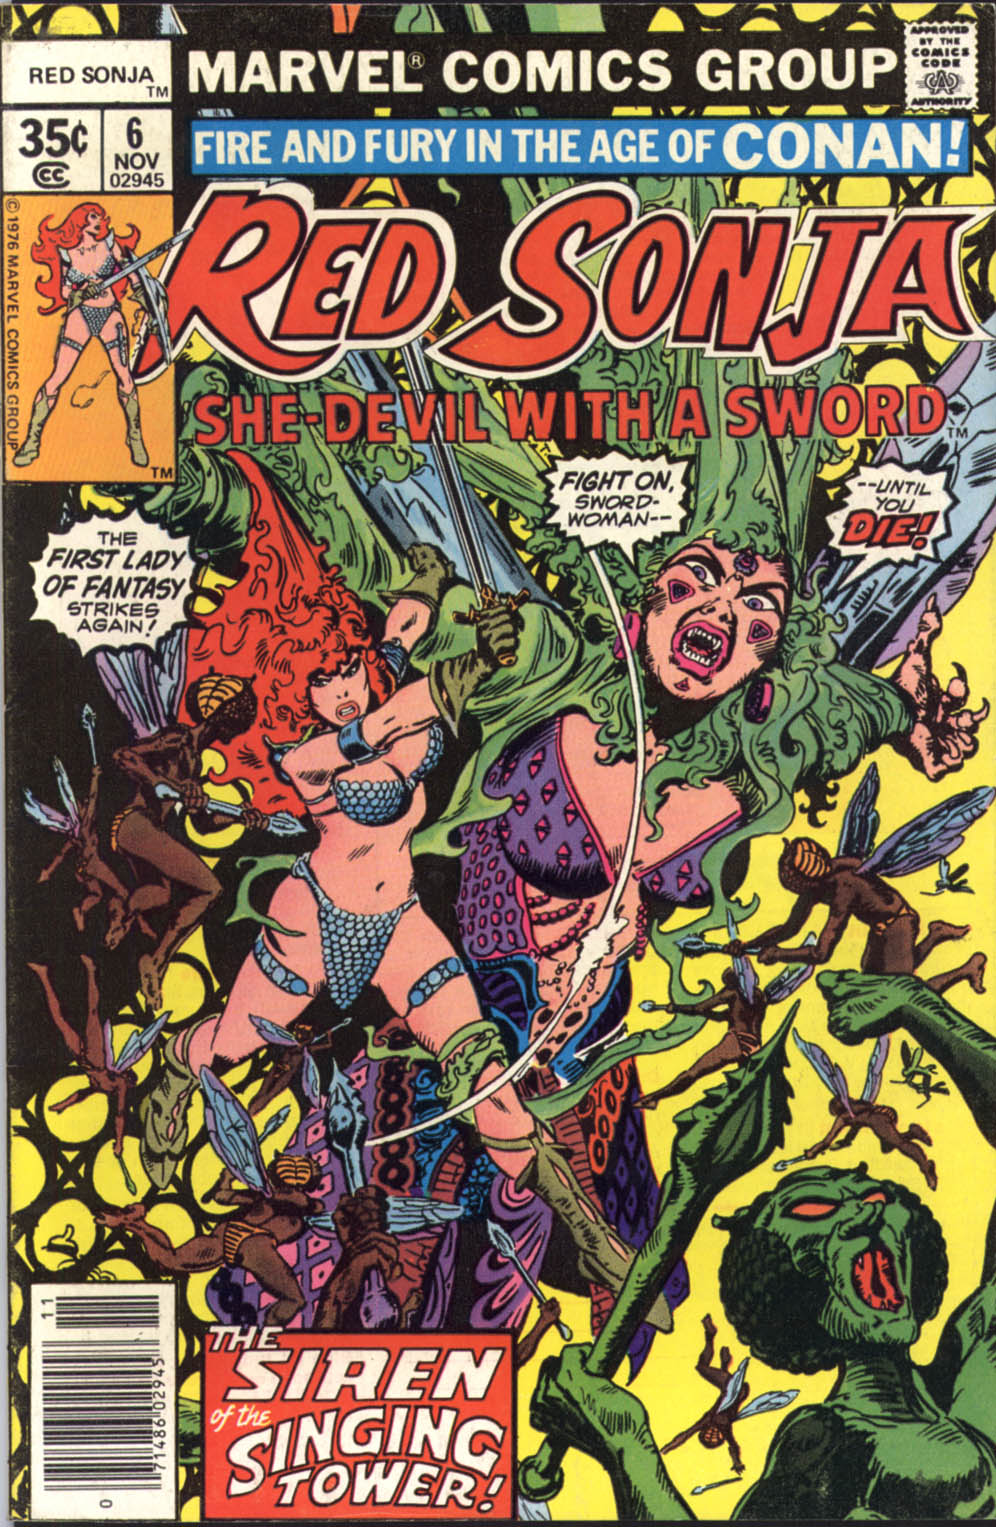 Red Sonja (1977) Issue 6 (Red Sonja (1977), #6)